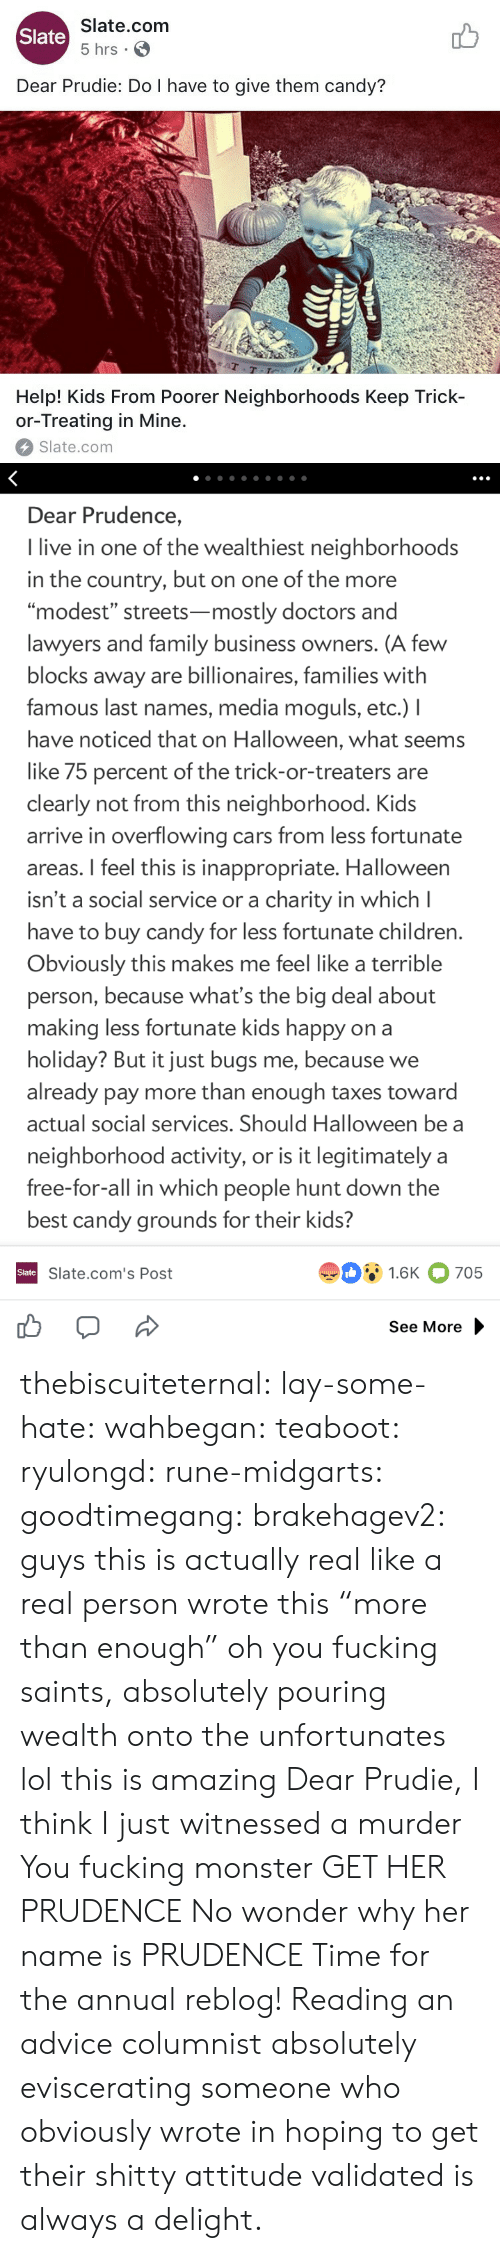 "Advice, Candy, and Cars: Slate.com  5 hrs .  Slate  Dear Prudie: Do I have to give them candy?  aT  T-T  Help! Kids From Poorer Neighborhoods Keep Trick-  or-Treating in Mine.  Slate.com   Dear Prudence,  I live in one of the wealthiest neighborhoods  in the country, but on one of the more  ""modest"" streets-mostly doctors and  lawyers and family business owners. (A few  blocks away are billionaires, families with  famous last names, media moguls, etc.) I  have noticed that on Halloween, what seems  like 75 percent of the trick-or-treaters are  clearly not from this neighborhood. Kids  arrive in overflowing cars from less fortunate  areas. I feel this is inappropriate. Halloween  isn't a social service or a charity in which l  have to buy candy for less fortunate children  Obviously this makes me feel like a terrible  person, because what's the big deal about  making less fortunate kids happy on a  holiday? But it just bugs me, because we  already pay more than enough taxes toward  actual social services. Should Halloween be a  neighborhood activity, or is it legitimately a  free-for-all in which people hunt down the  best candy grounds for their kids?  91.6K 705  Slate  Slate.com's Post  See More thebiscuiteternal:  lay-some-hate:  wahbegan:  teaboot:  ryulongd:  rune-midgarts:  goodtimegang:  brakehagev2:  guys this is actually real like a real person wrote this  ""more than enough"" oh you fucking saints, absolutely pouring wealth onto the unfortunates   lol this is amazing   Dear Prudie, I think I just witnessed a murder  You fucking monster  GET HER PRUDENCE   No wonder why her name is PRUDENCE   Time for the annual reblog! Reading an advice columnist absolutely eviscerating someone who obviously wrote in hoping to get their shitty attitude validated is always a delight."